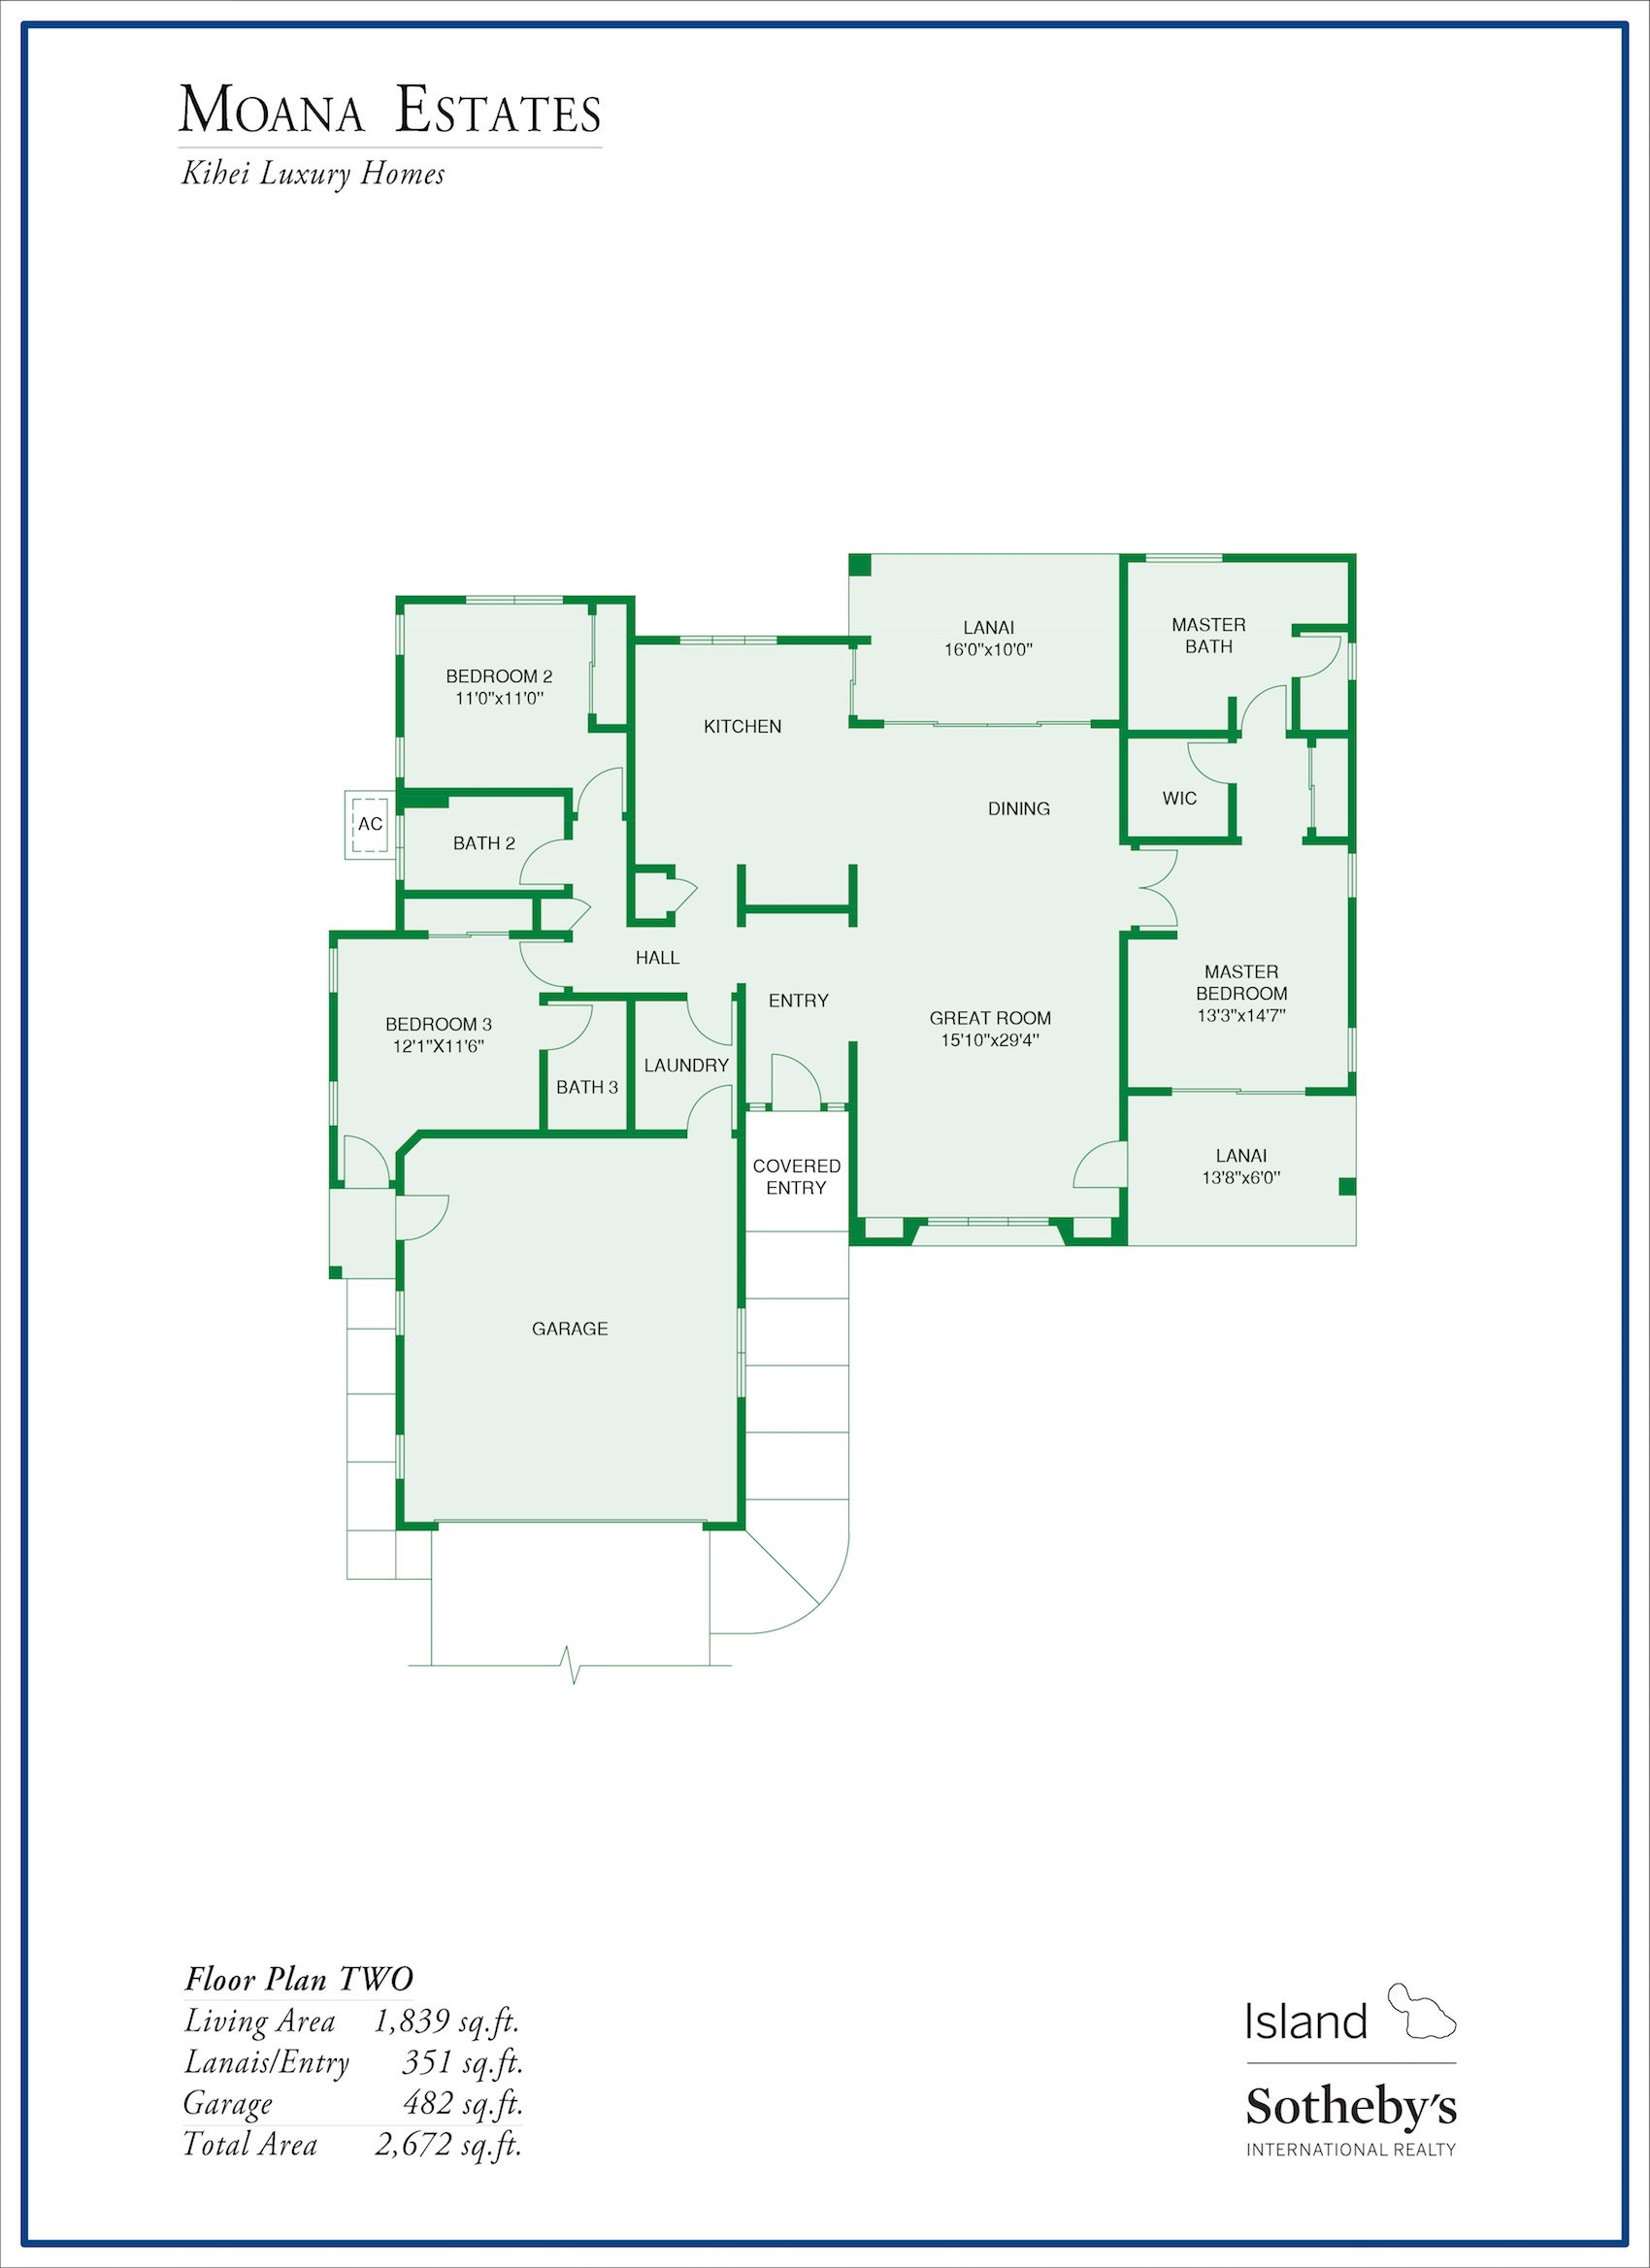 Moana Estates Floor Plan 2